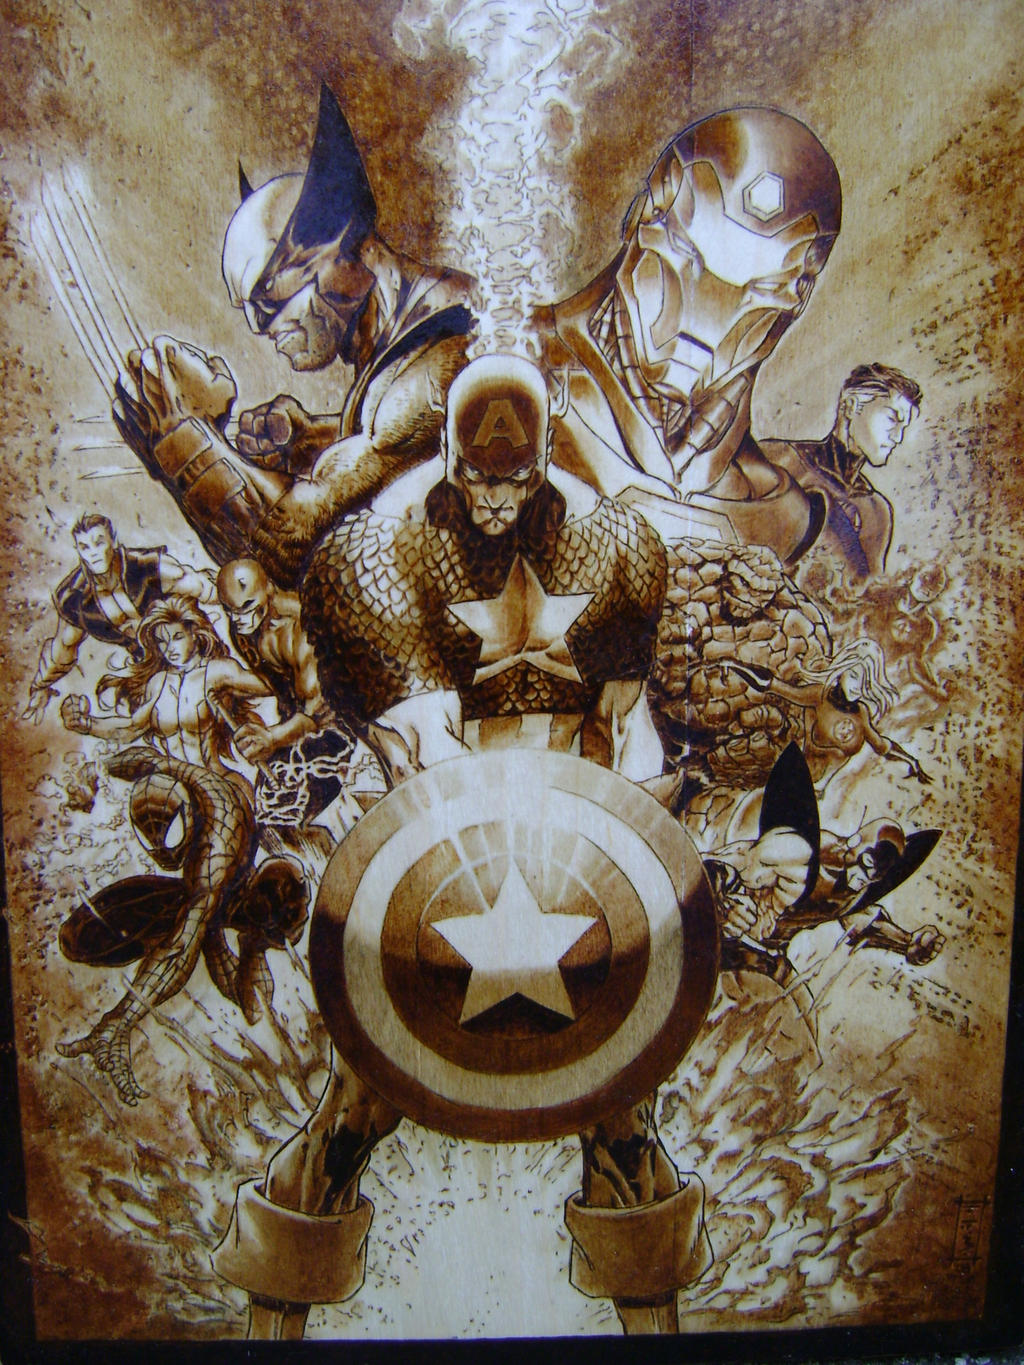 civilwar cover after turner by burninginkworks